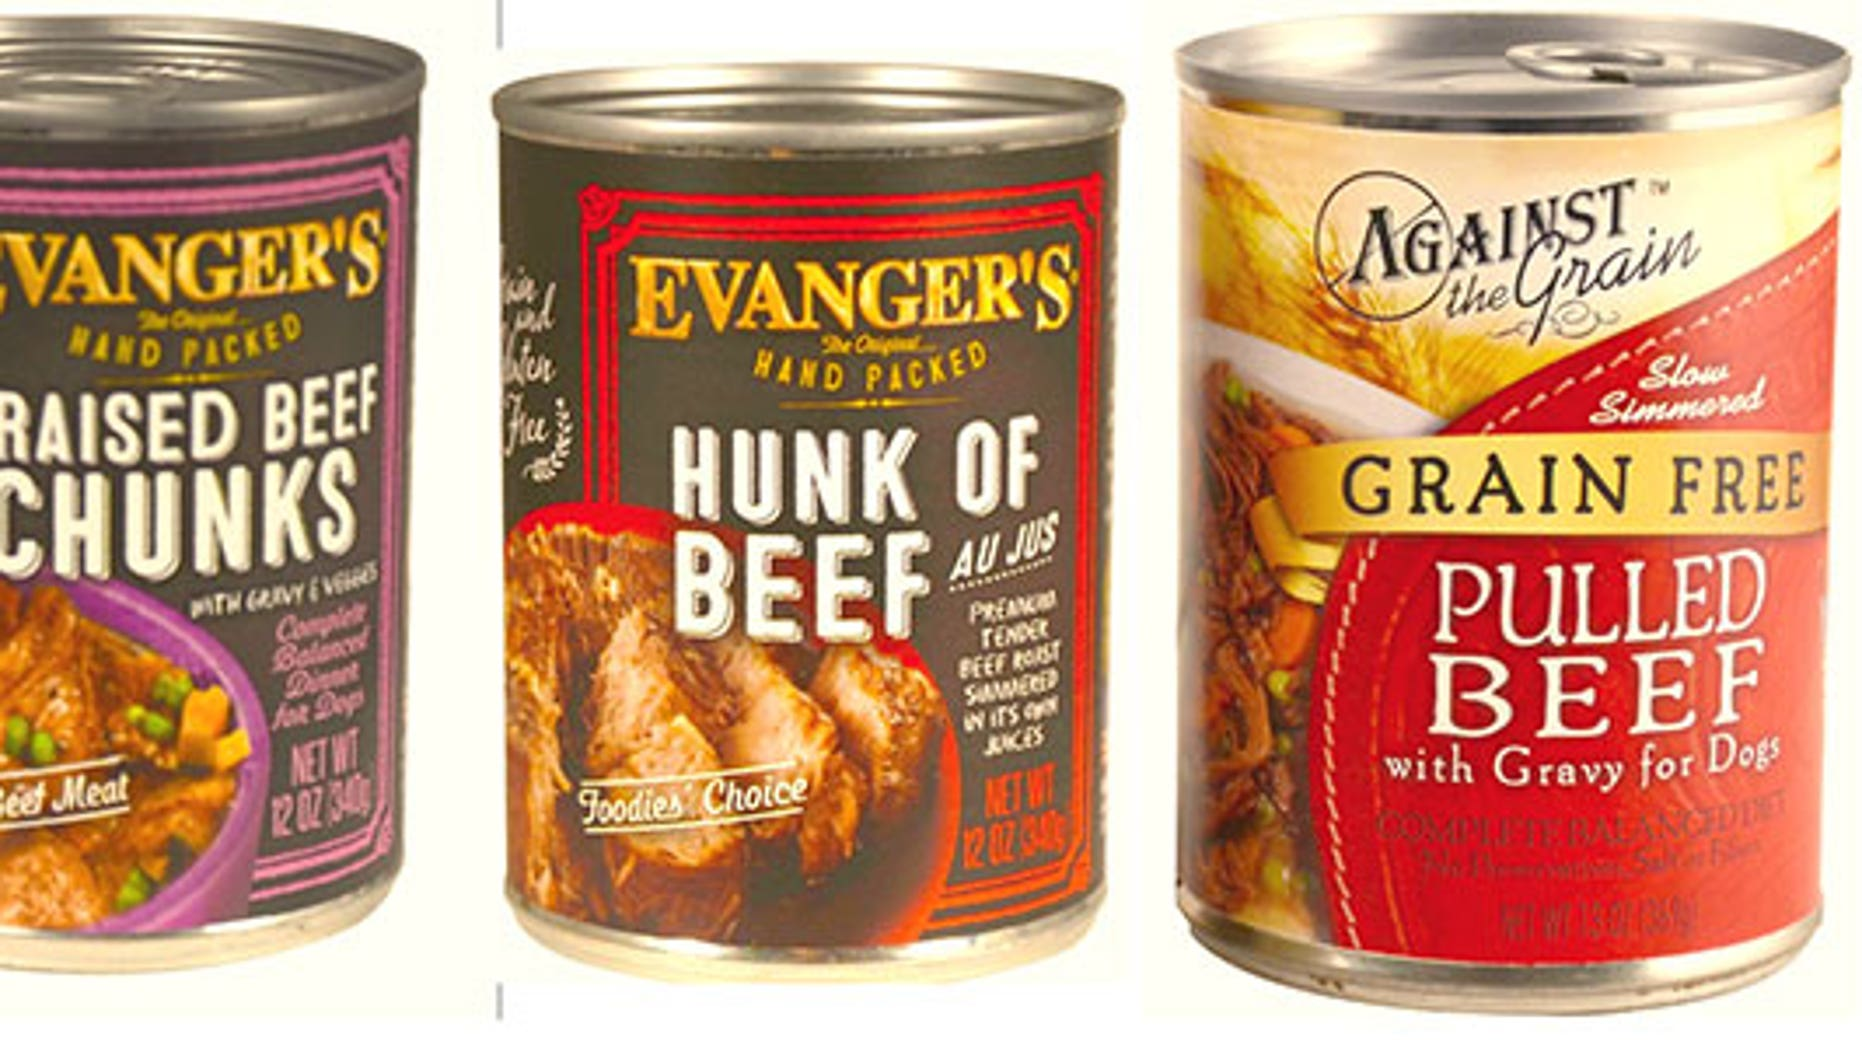 Evanger's has expanded it's recall to include additional variations.